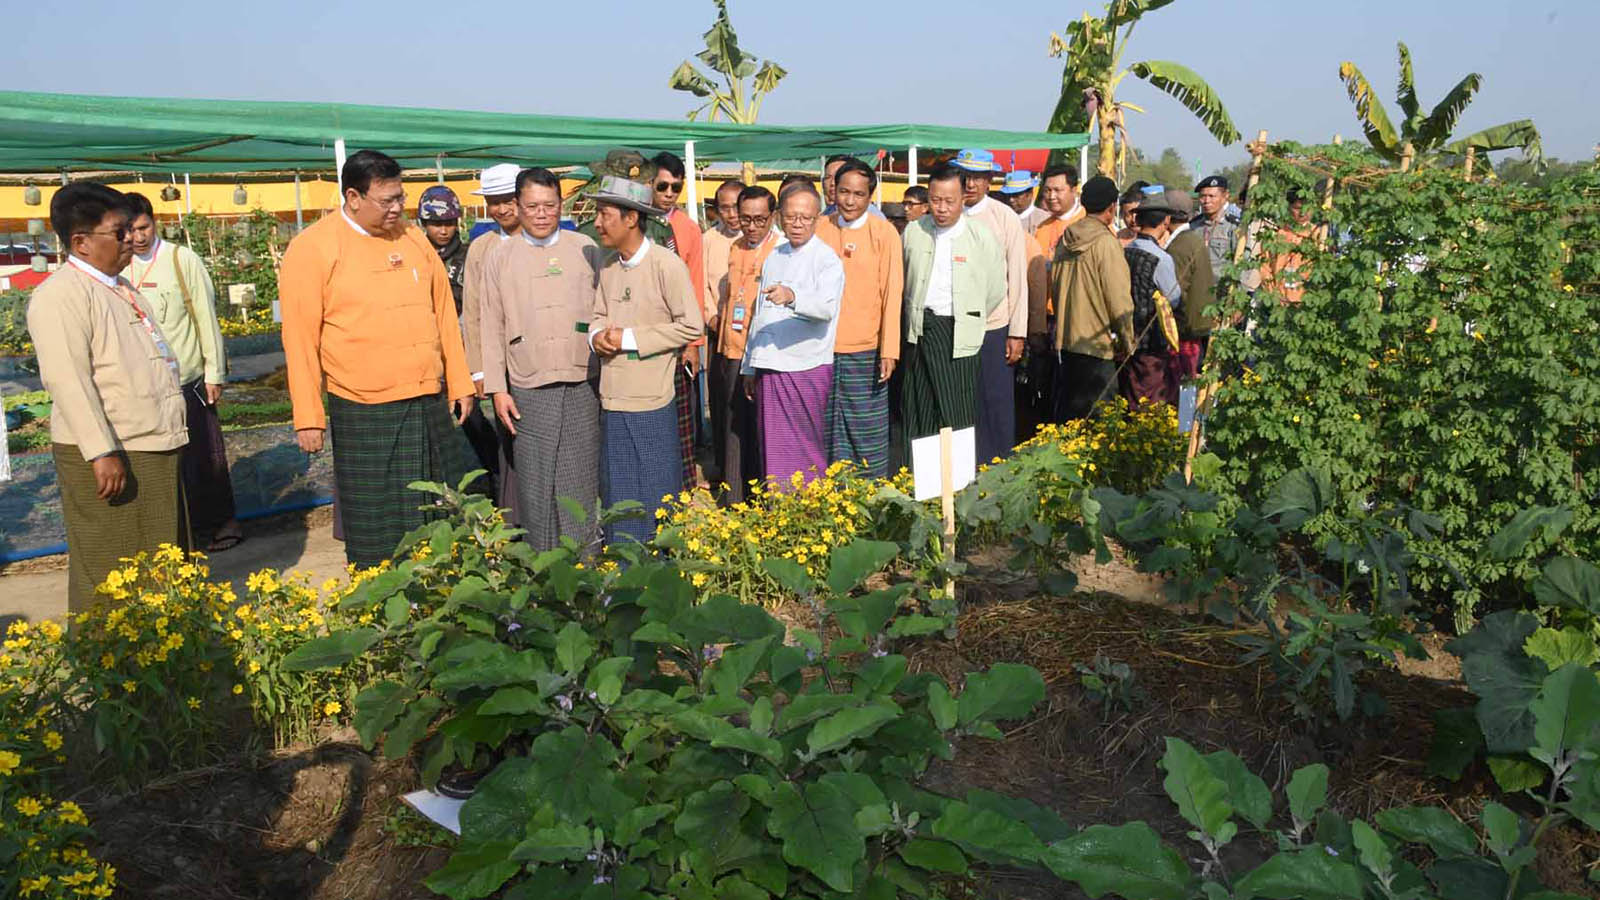 Officials led by Ayeyawady Region Chief Minister U Hla Moe Aung observe the plantation at the Agricultural Exhibition in Kangyidaung yesterday to mark Peasants Day. Photo: MNA